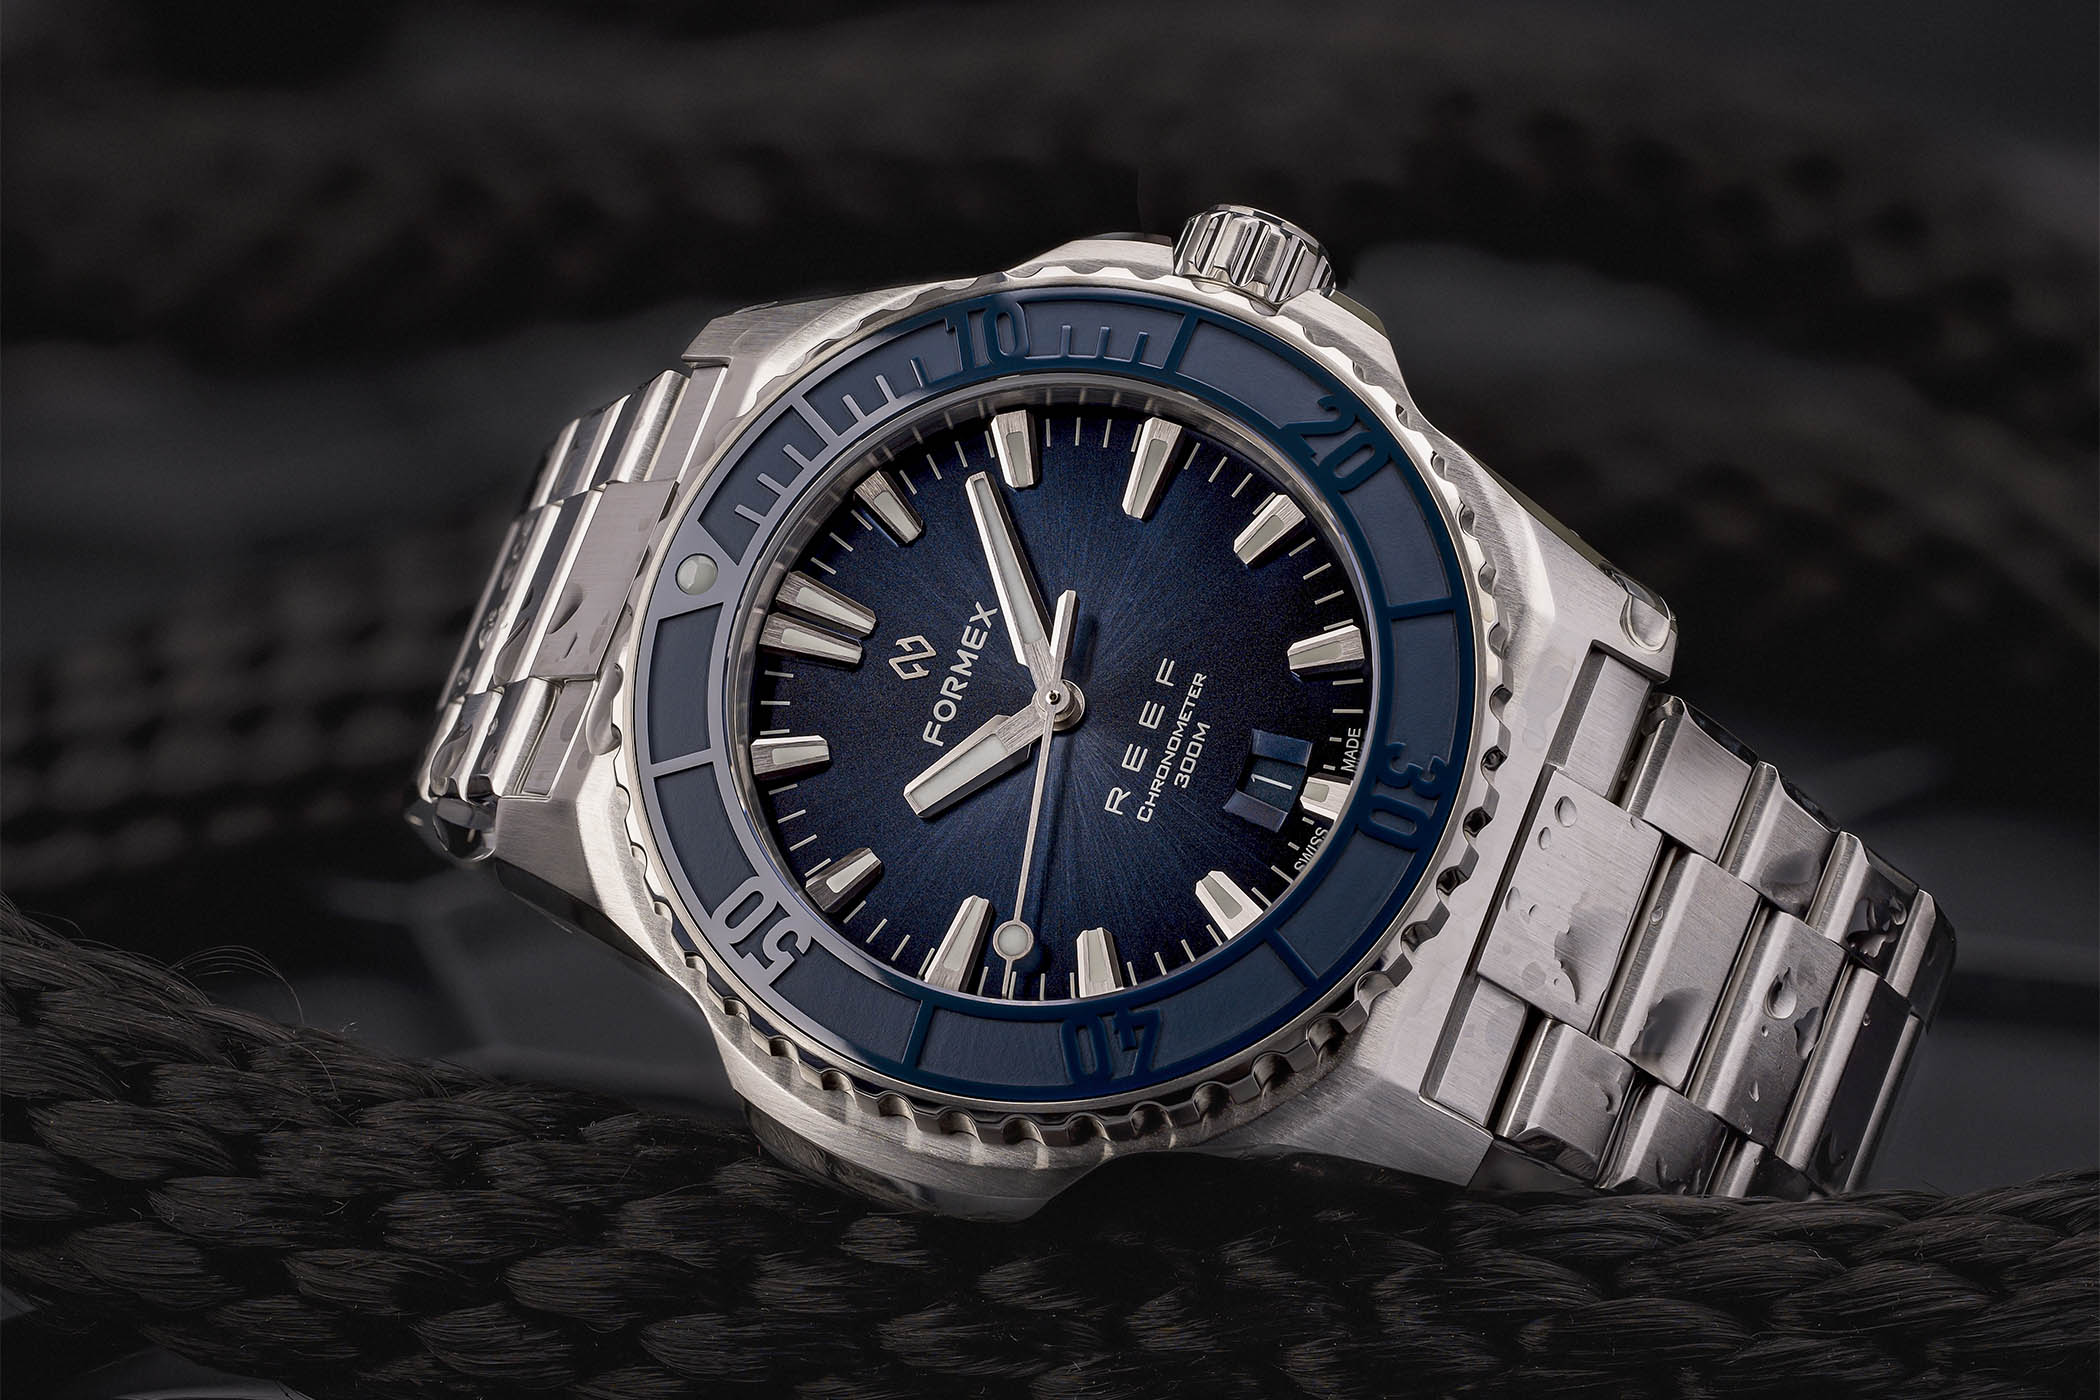 Formex Reef Automatic Chronometer 300M